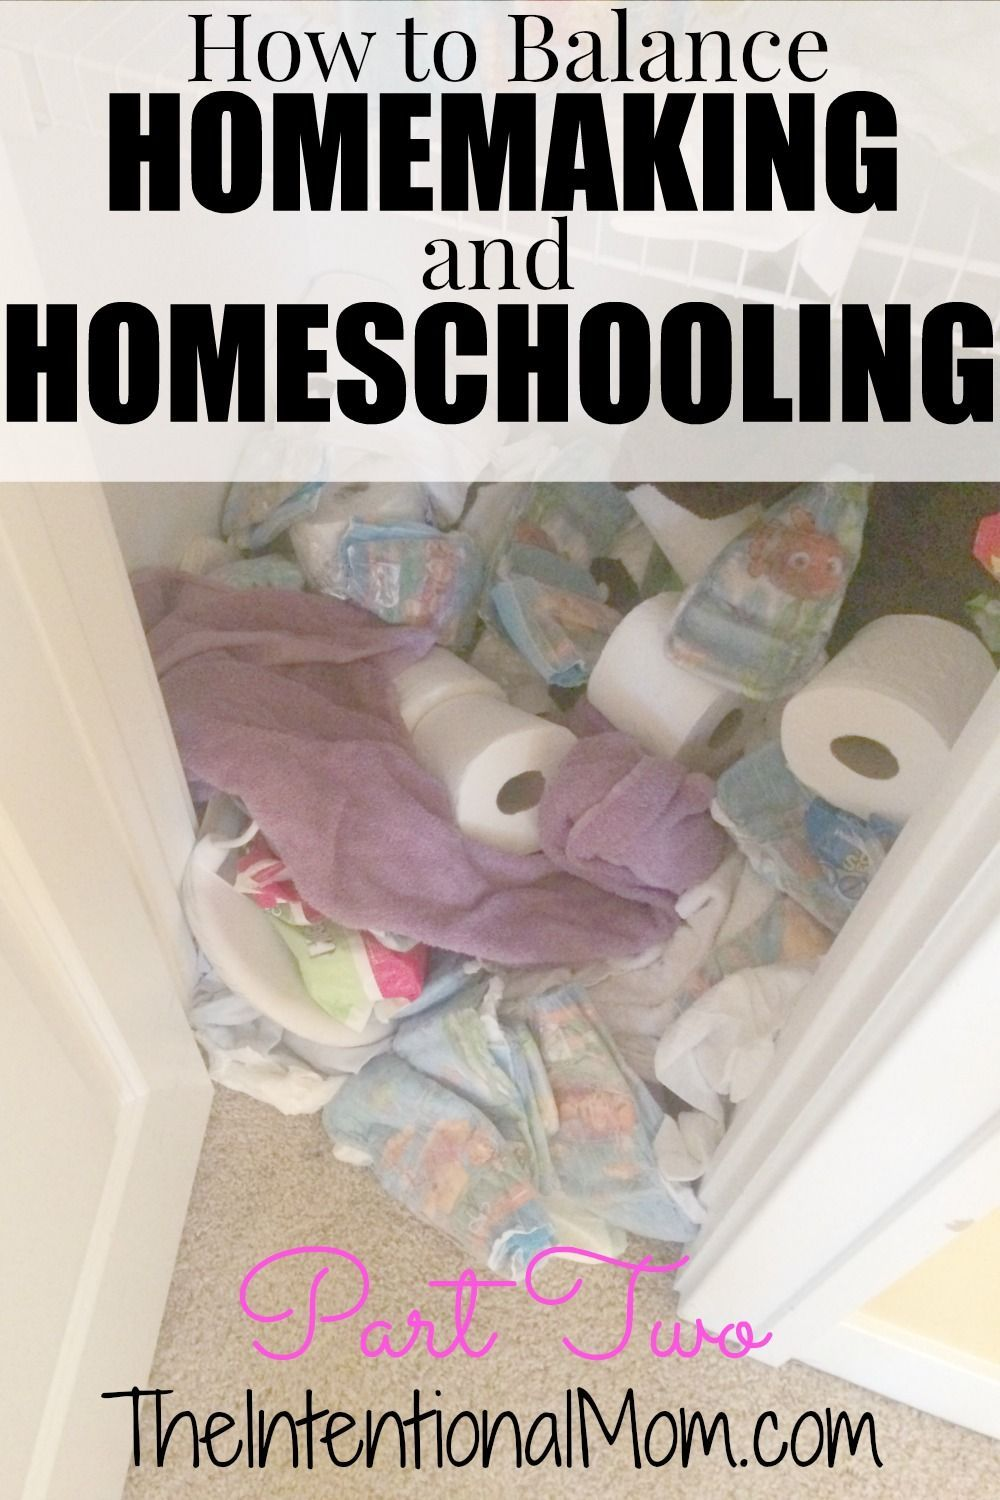 Is It A Struggle To Balance Homemaking And Homeschooling In Your